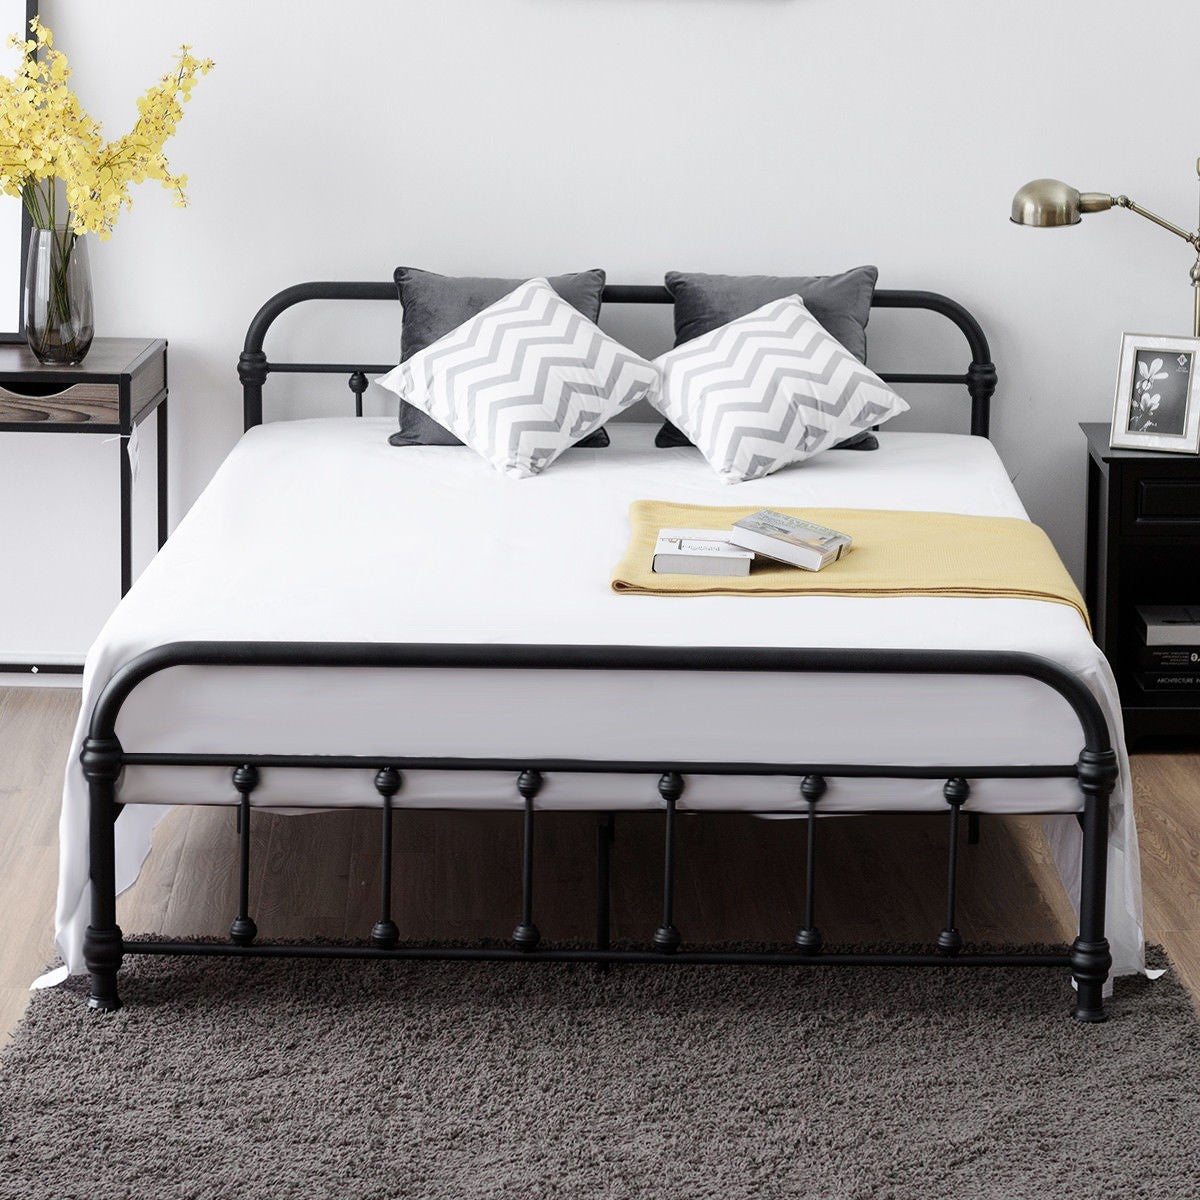 new arrival 1f88b a6542 Queen Size Metal Steel Bed Frame with Stable Metal Slats